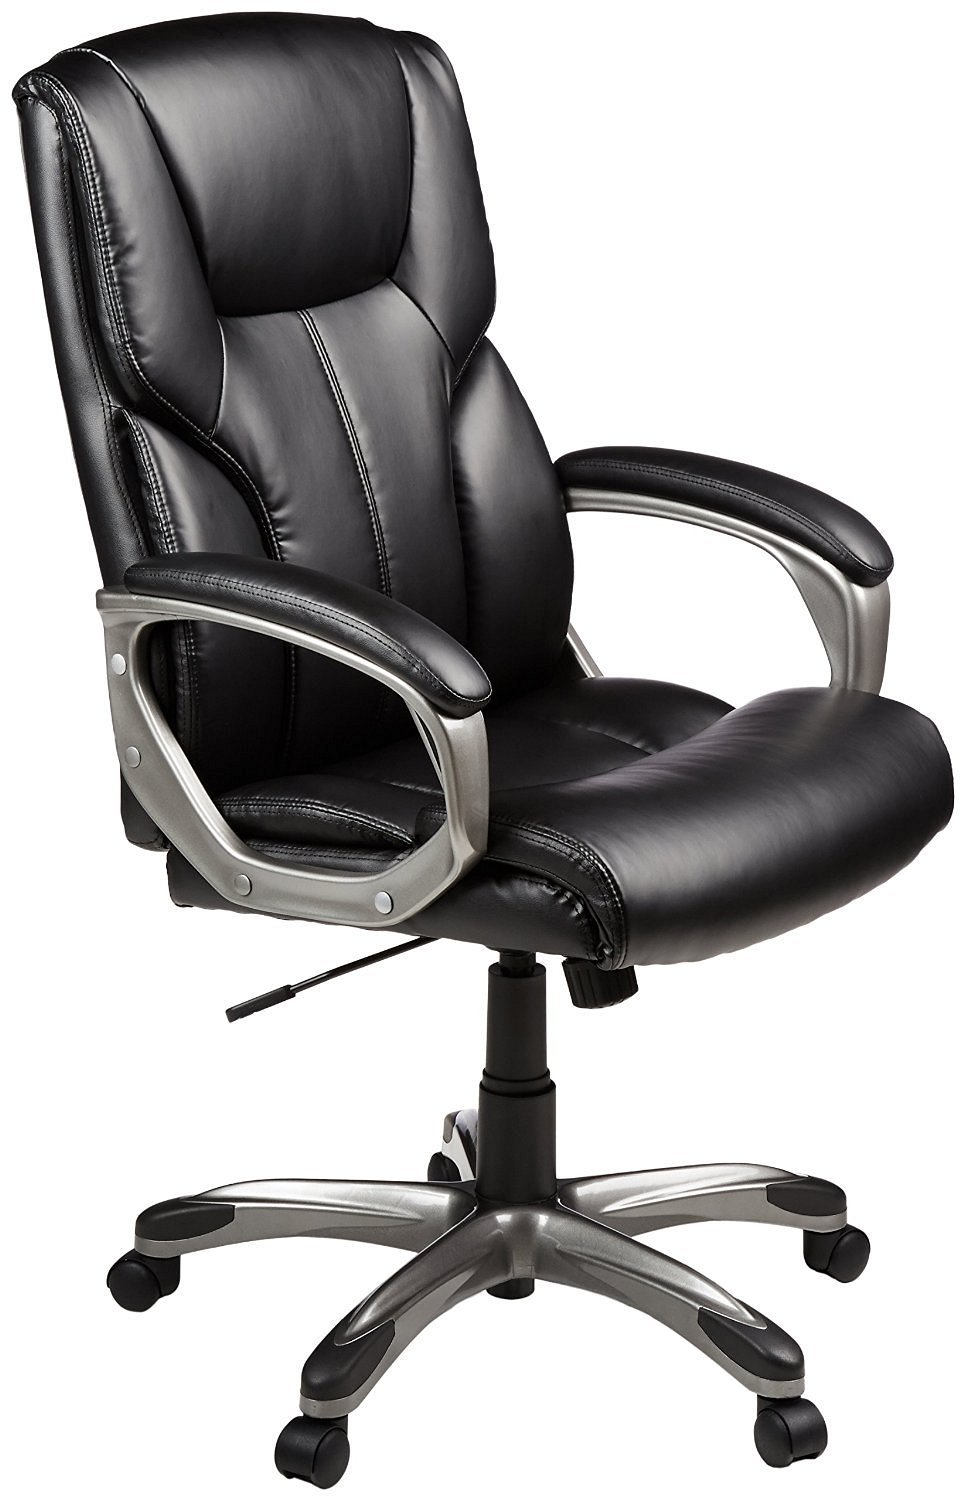 lcs gaming chair cheap kitchen chairs best top 20 pc to buy in 2019 image of executive office